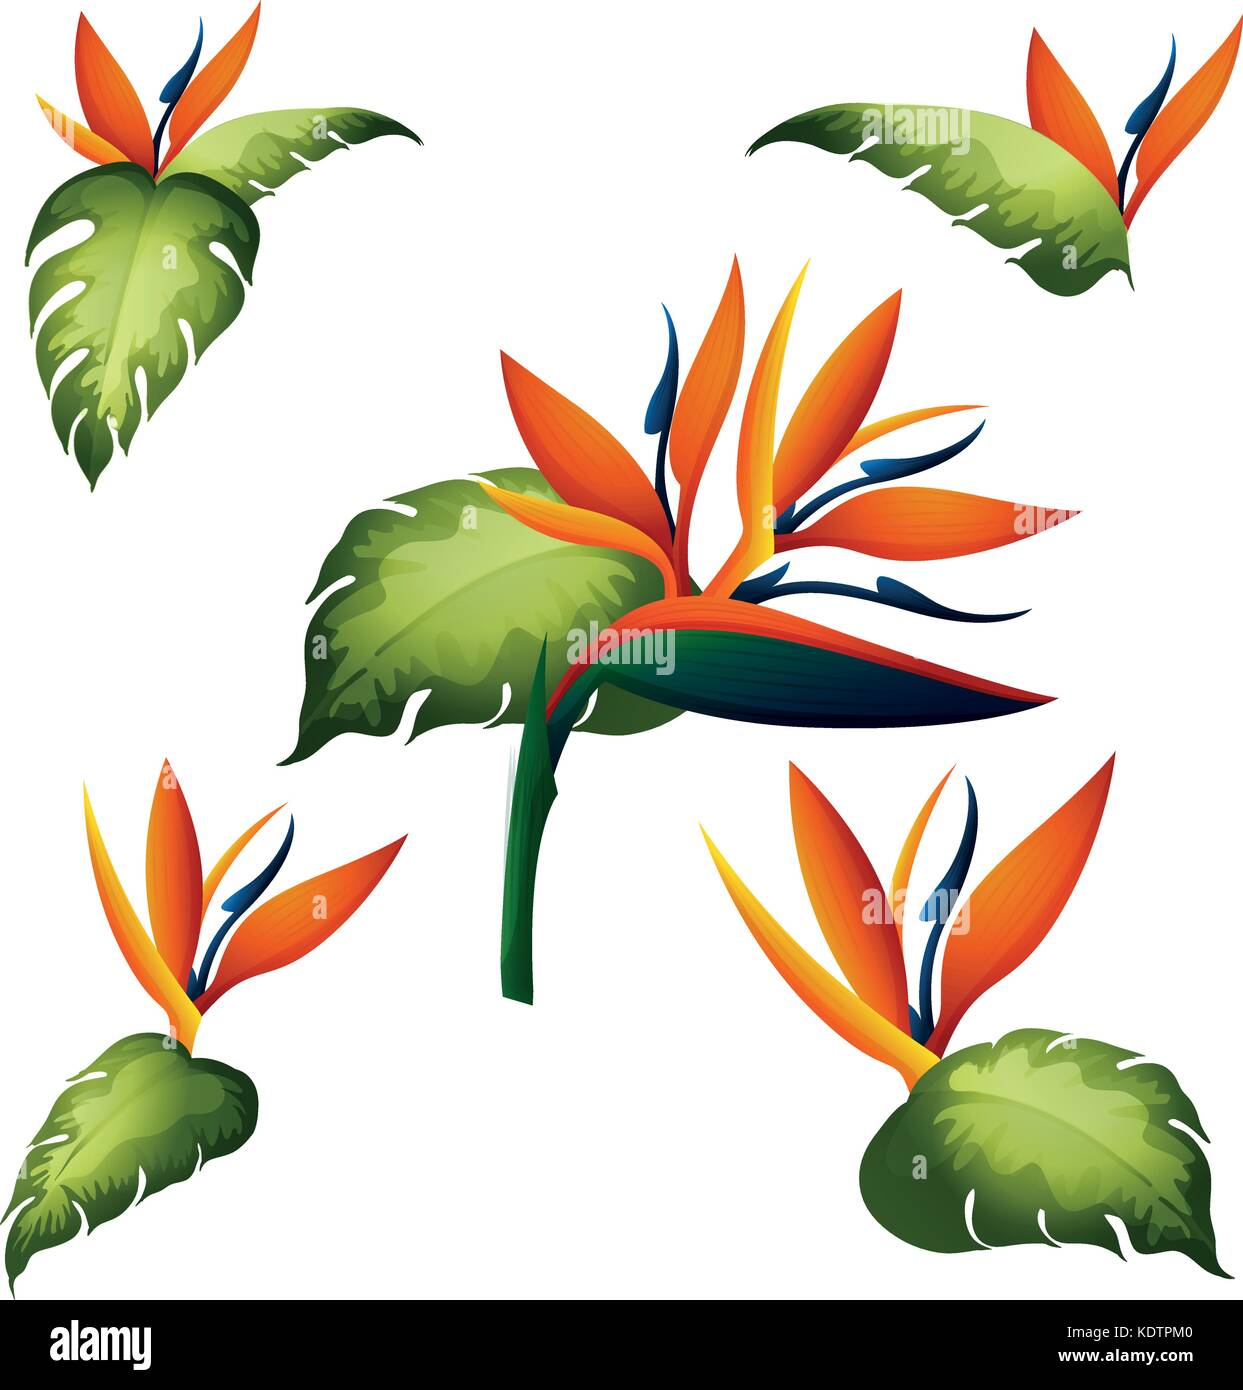 Bird Of Paradise Stock Vector Images - Alamy